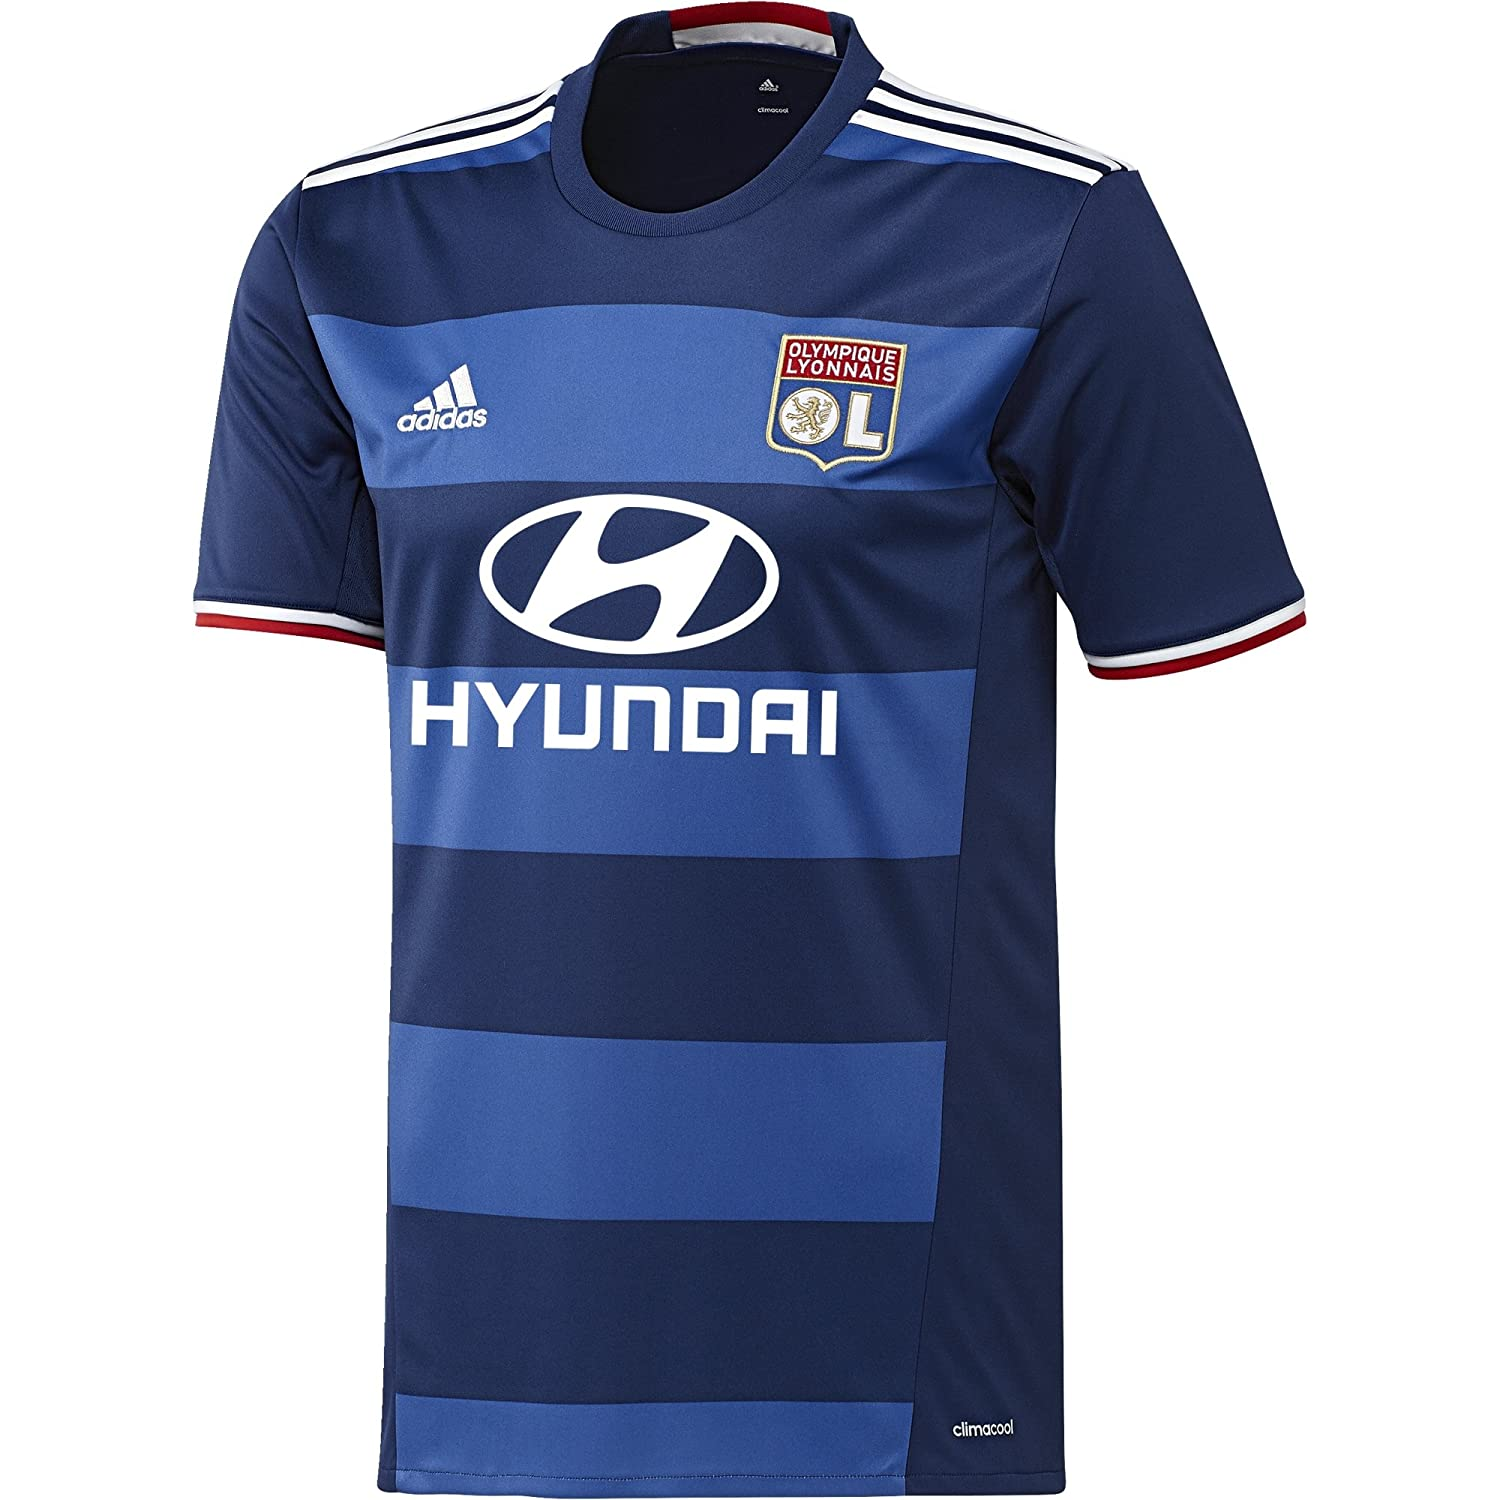 2016-2017 Olympique Lyon Adidas Away Football Shirt B01FVSXETYNavy Small 36-38\